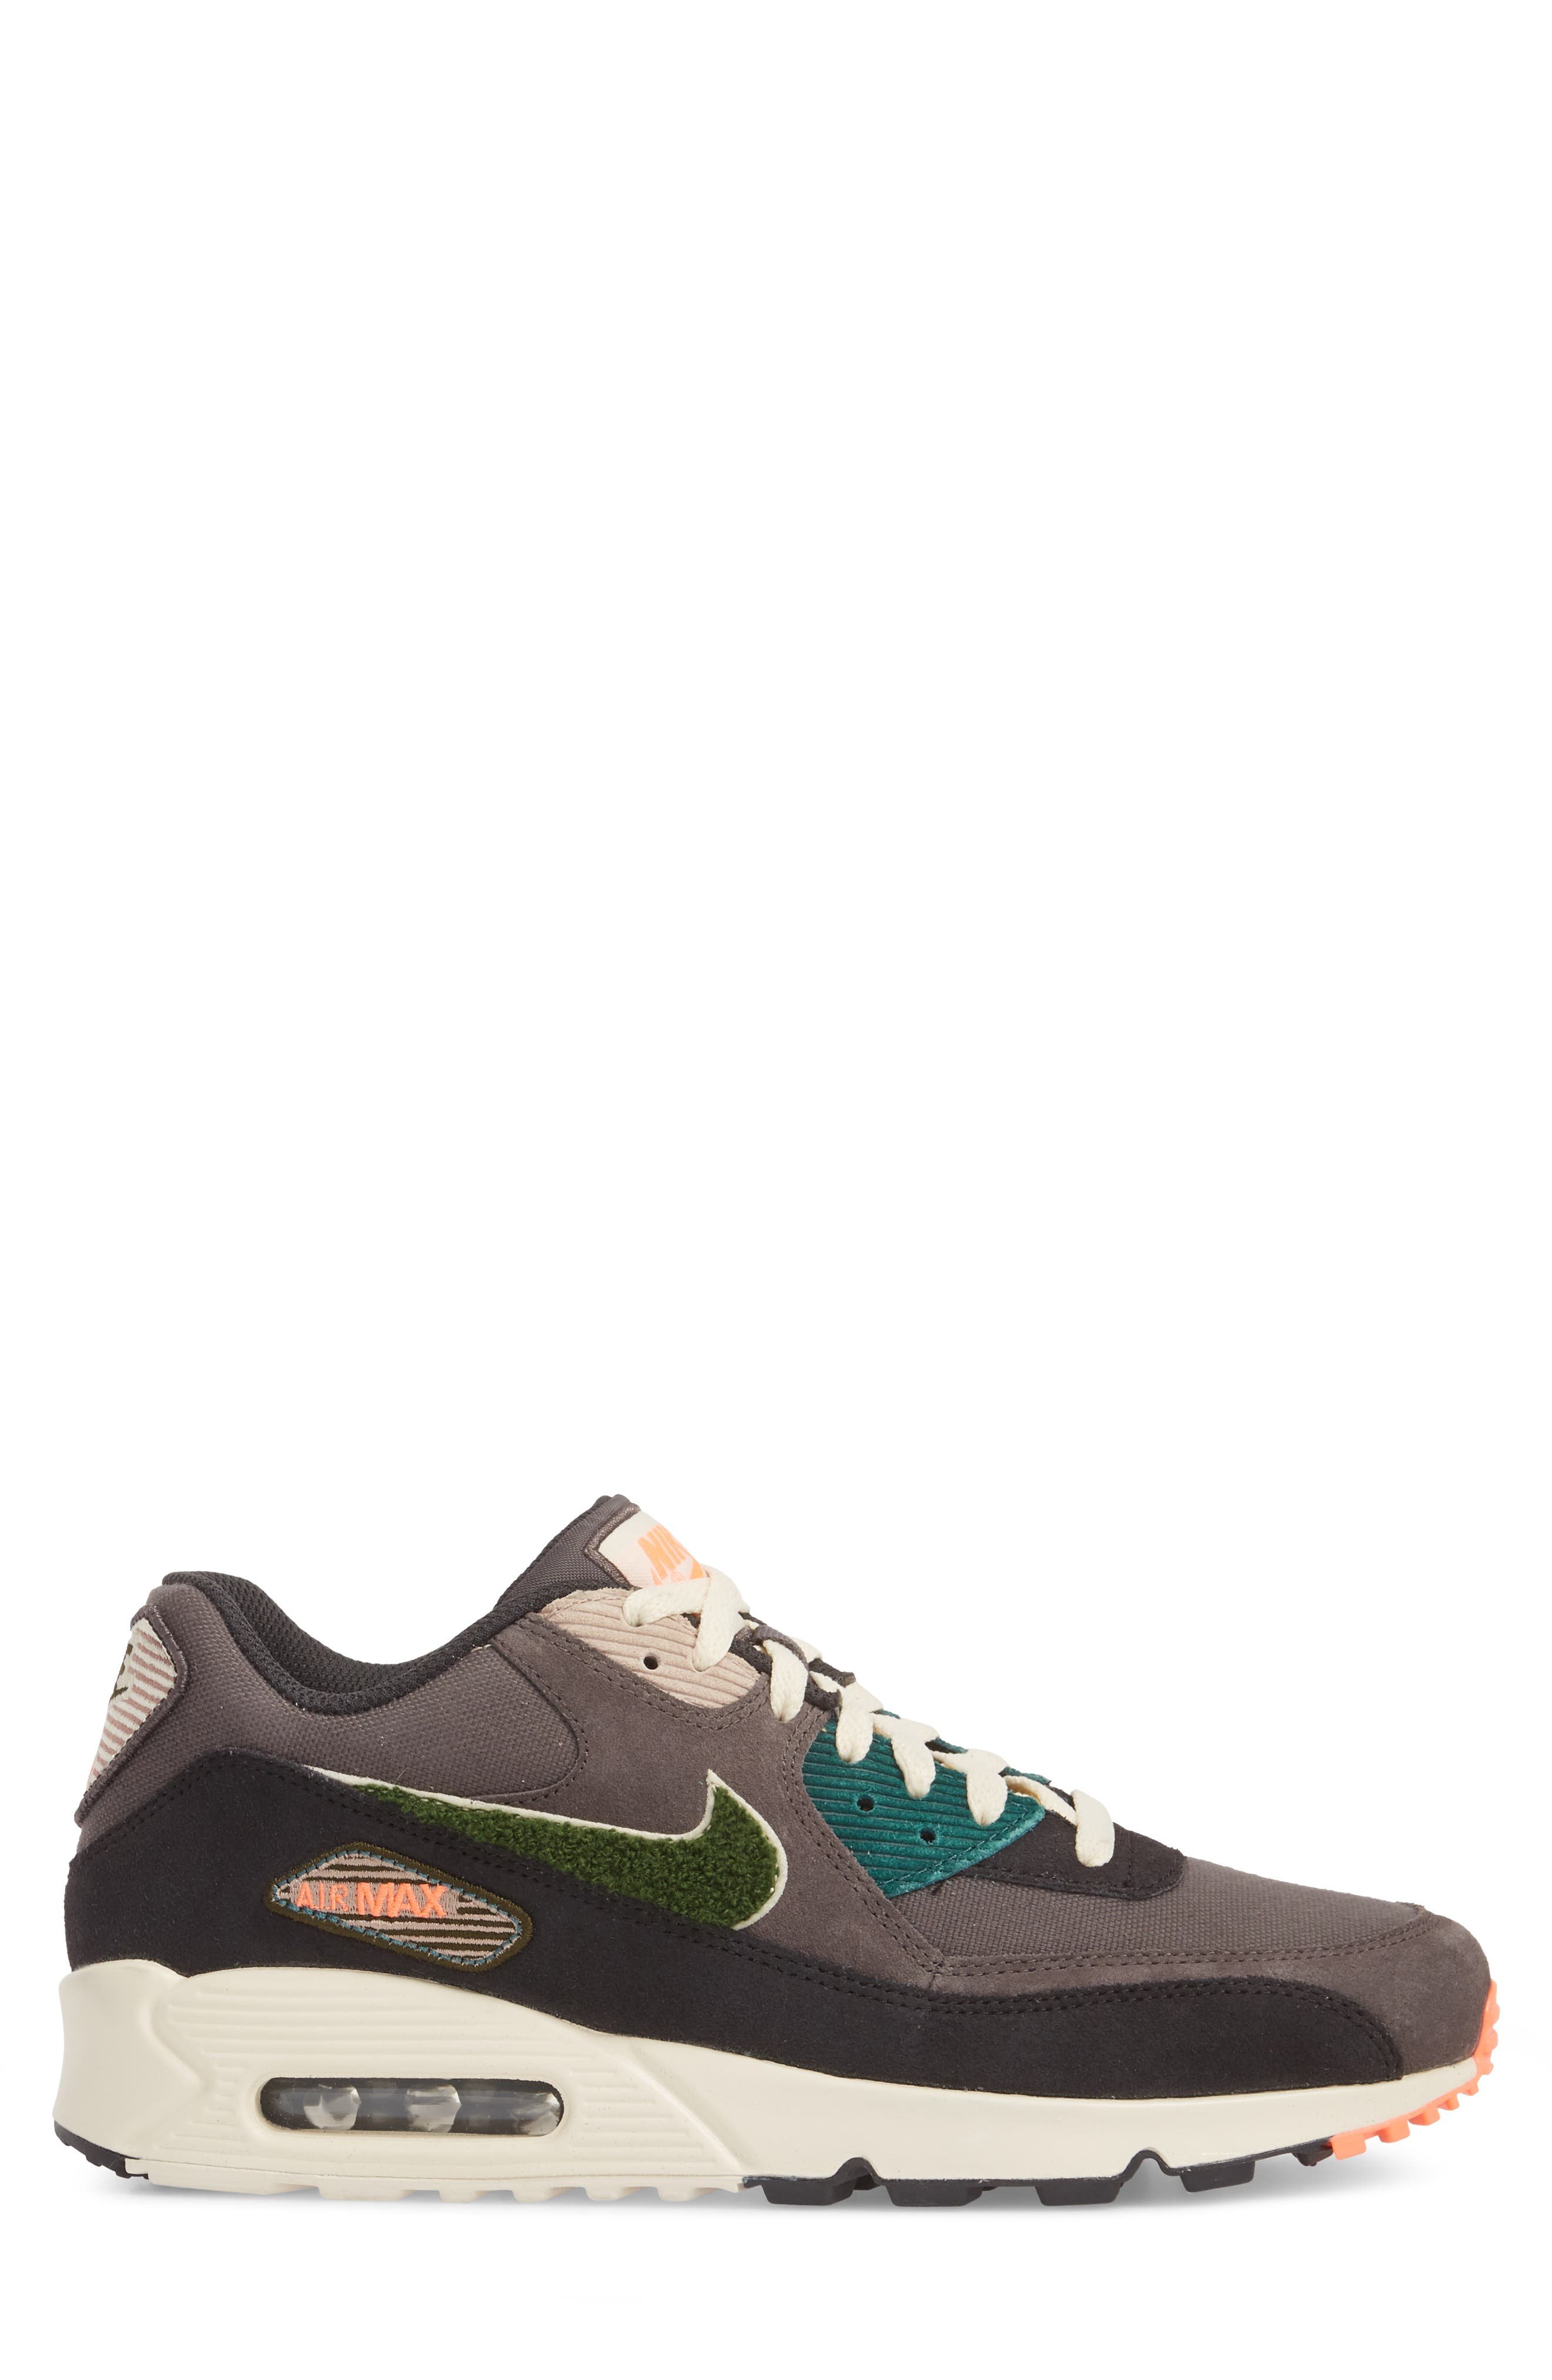 Air Max 90 Premium Sneaker,                             Alternate thumbnail 7, color,